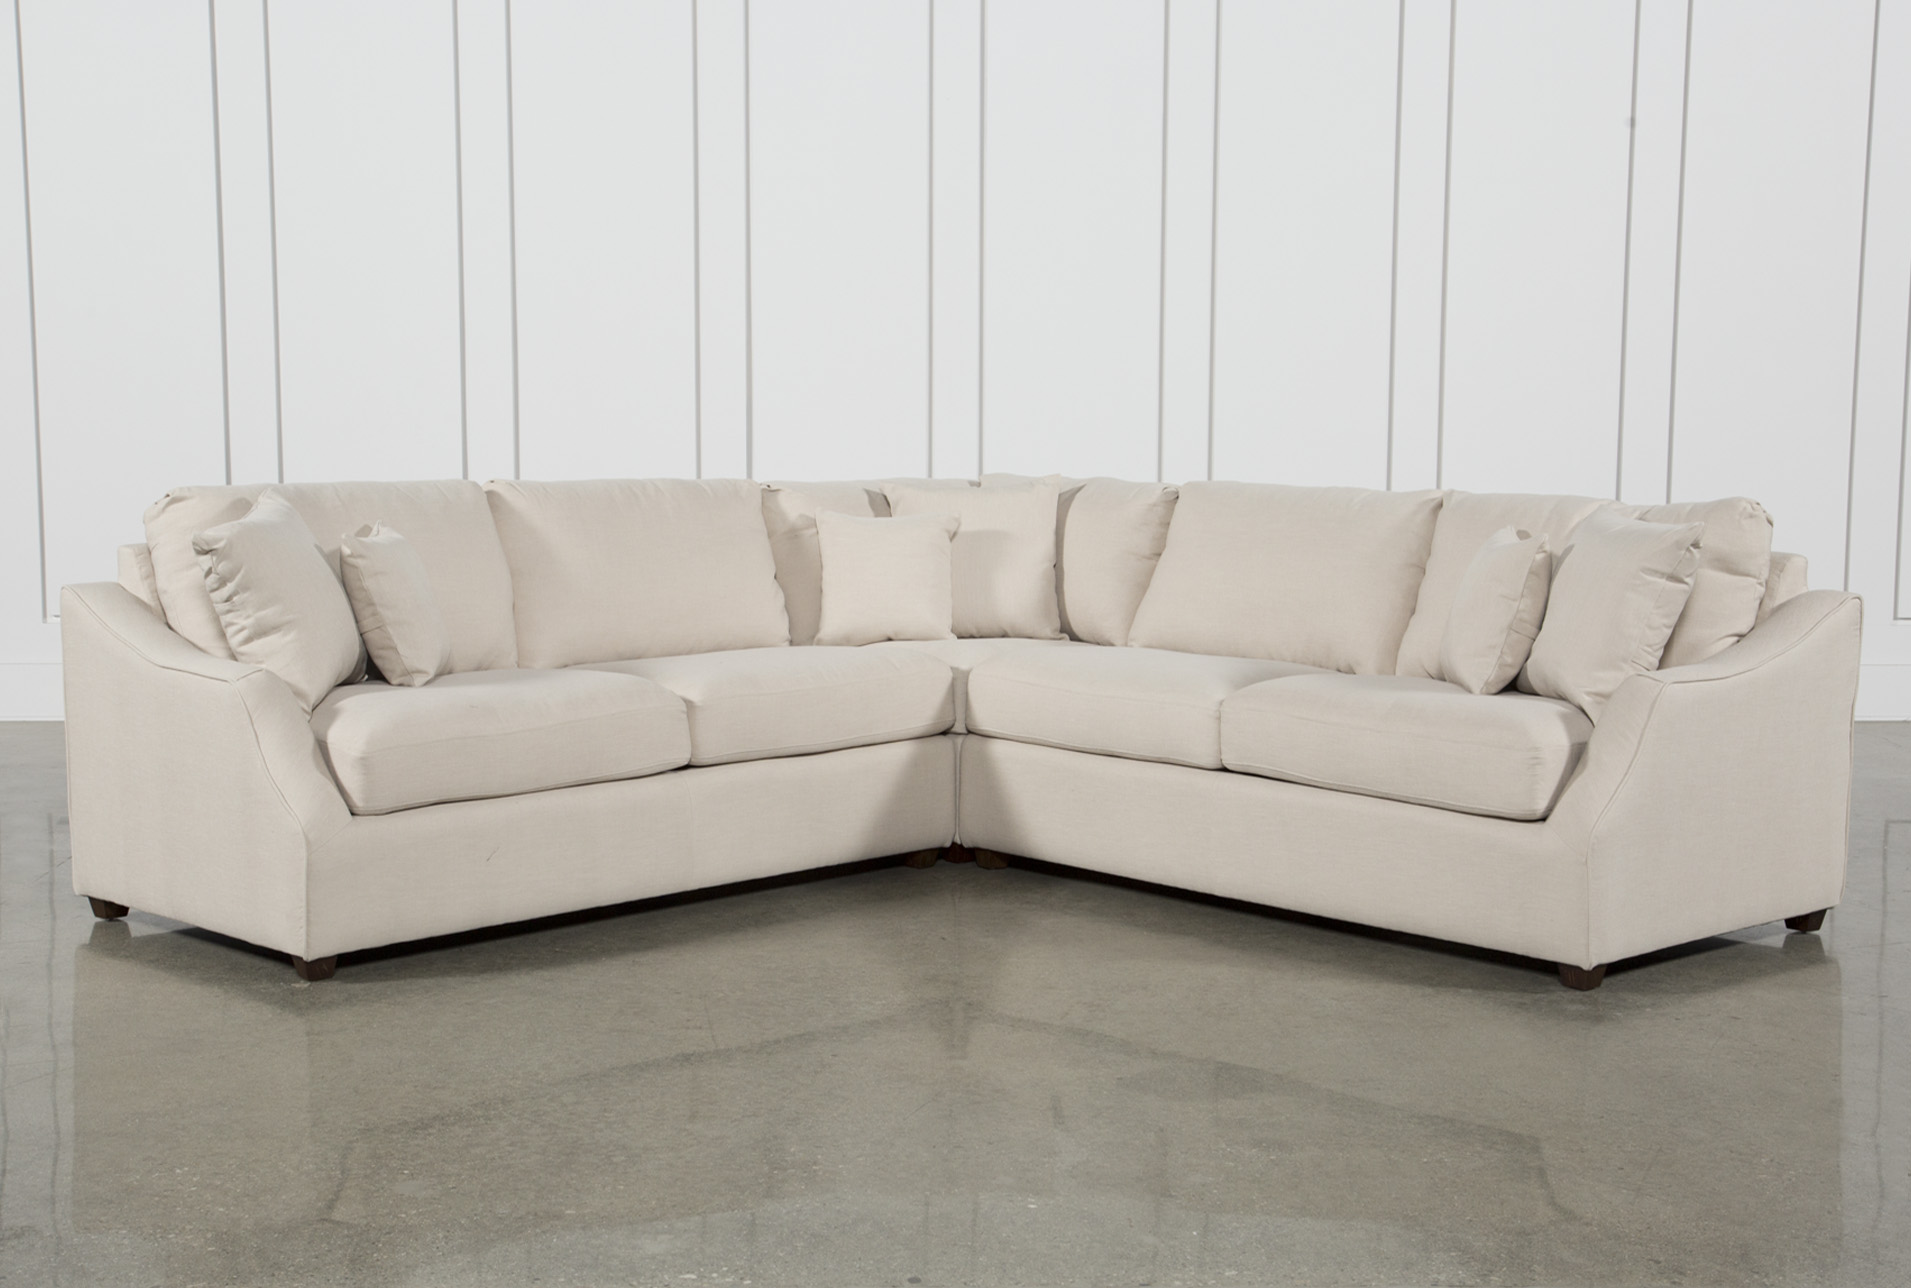 Magnolia Home Homestead 3 Piece Sectional By Joanna Gaines